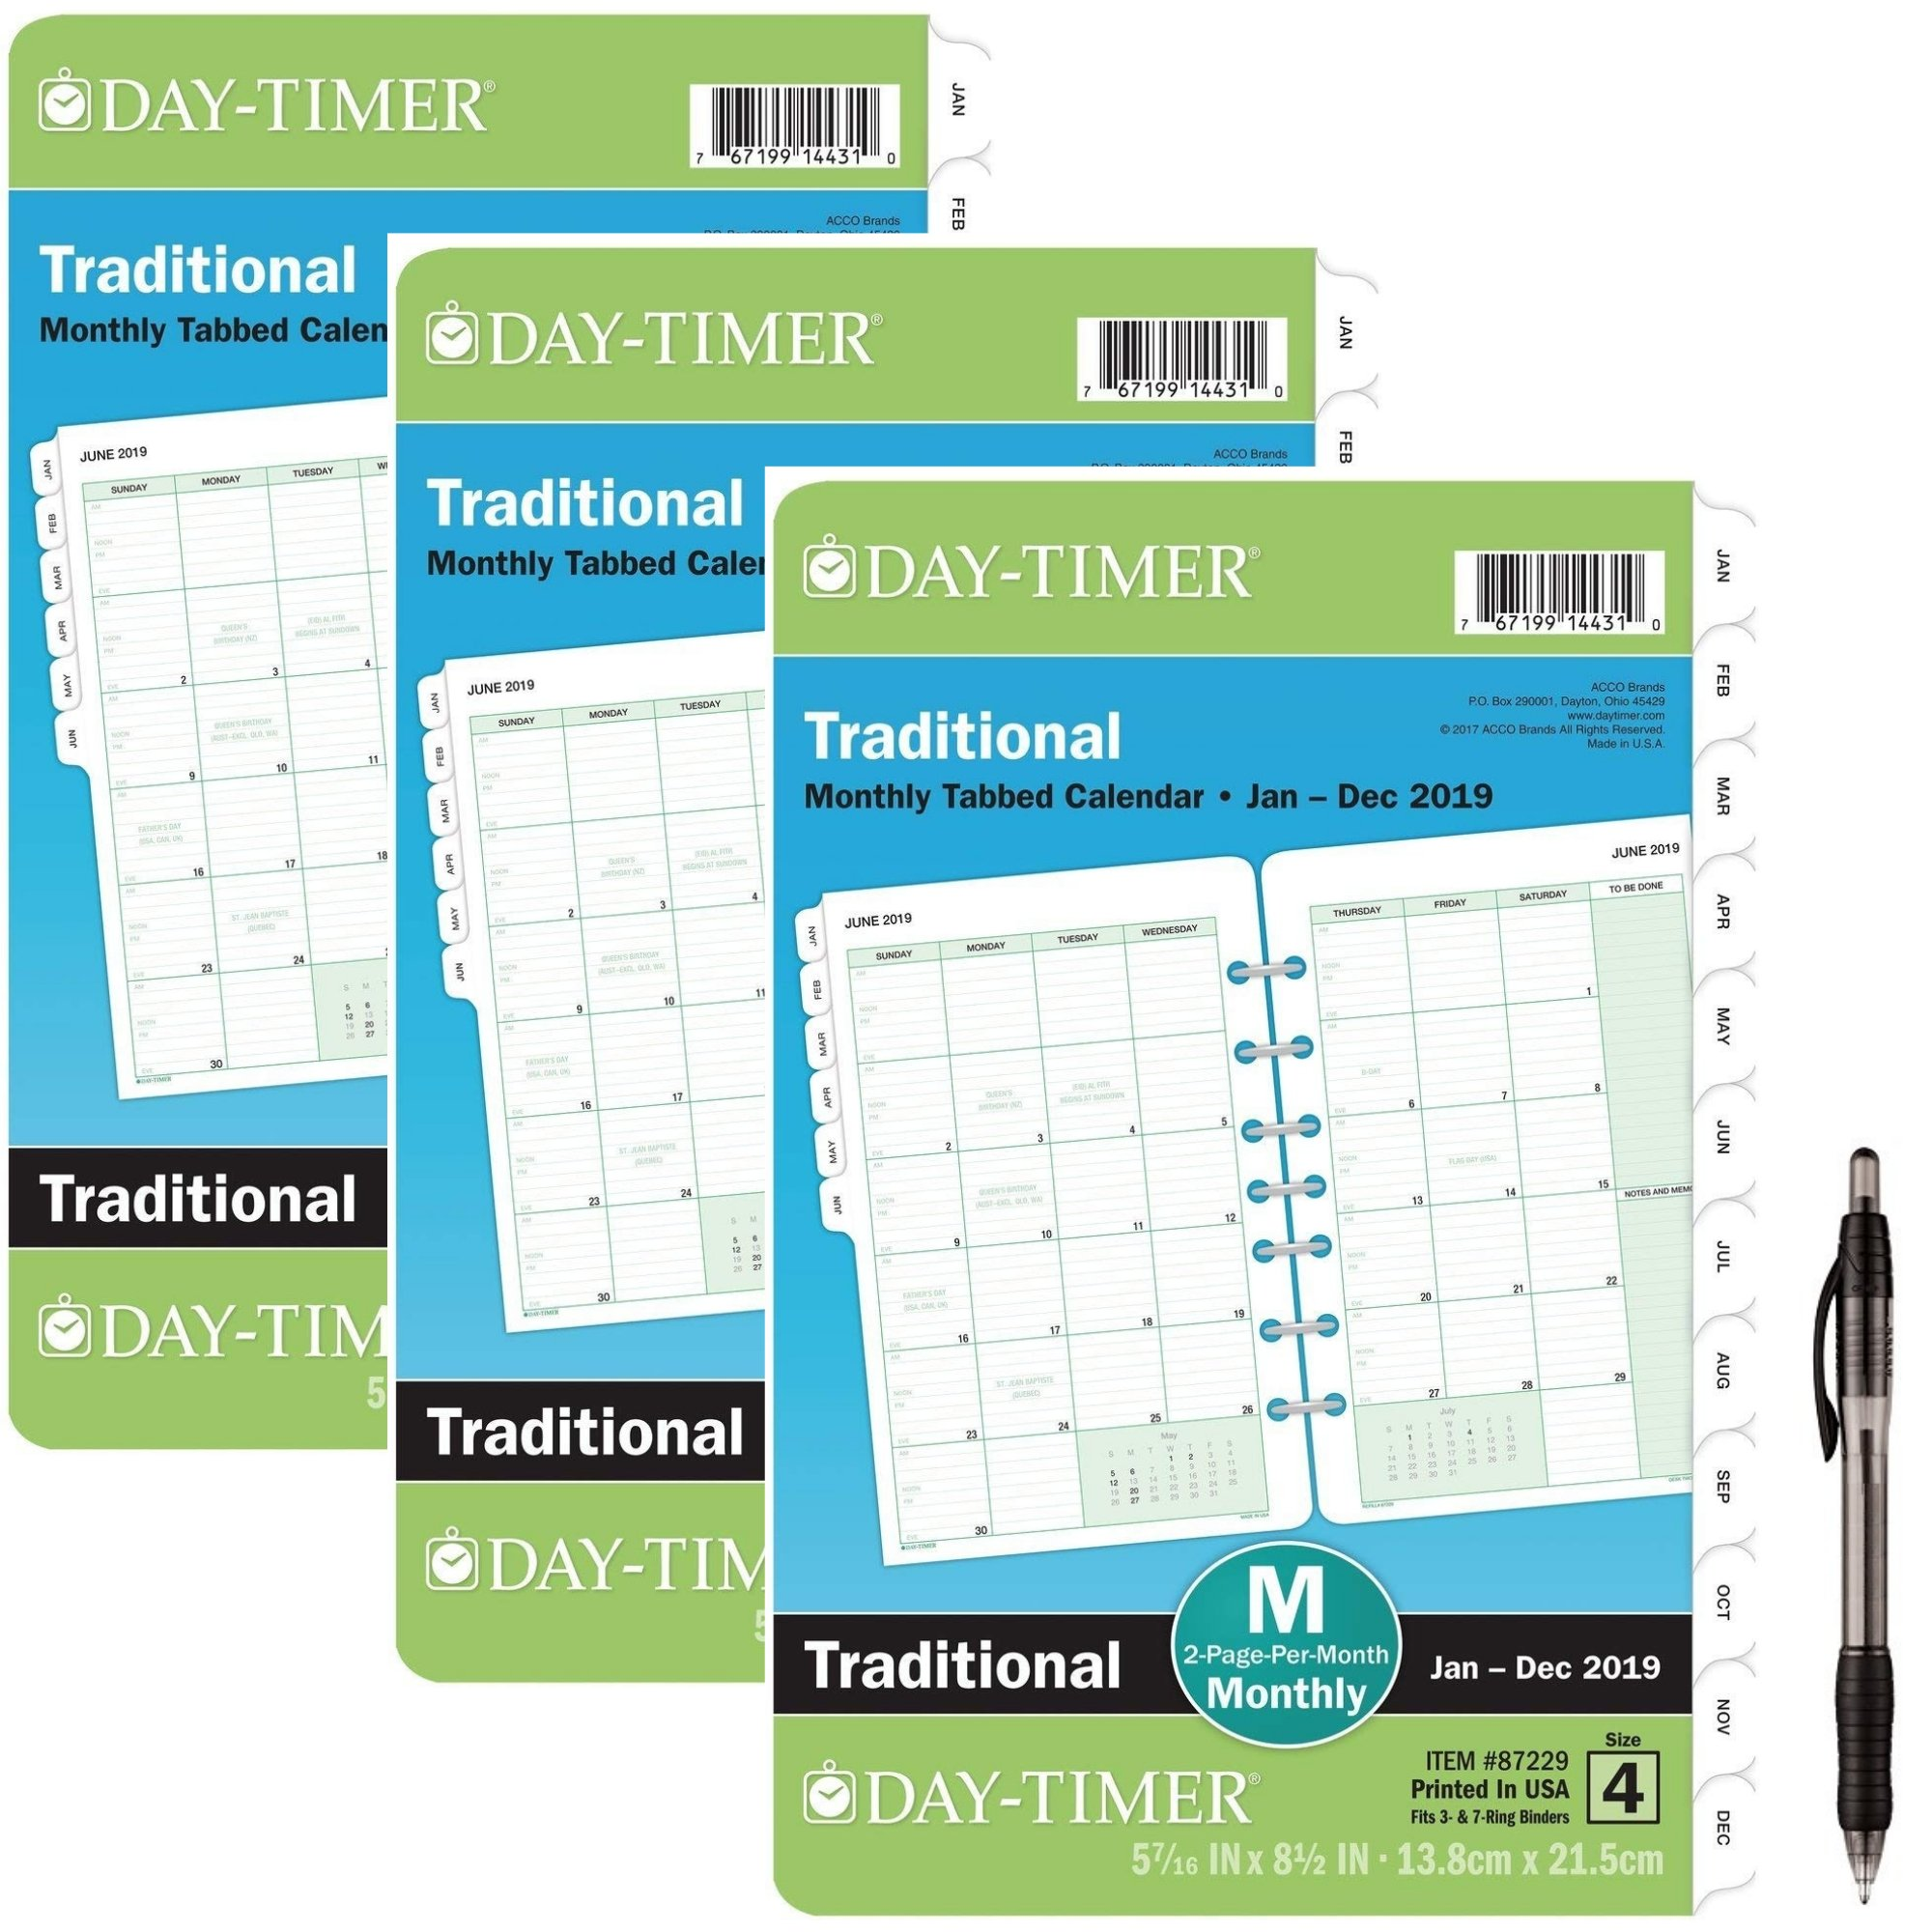 Day-Timer Refill 2019, Two Page per Month, January 2019 - December 2019, 5-1/2'' x 8-1/2'', Loose Leaf, Desk Size, Classic (87229) 3 Pack- Bundle Includes 1 Black Ballpoint Pen